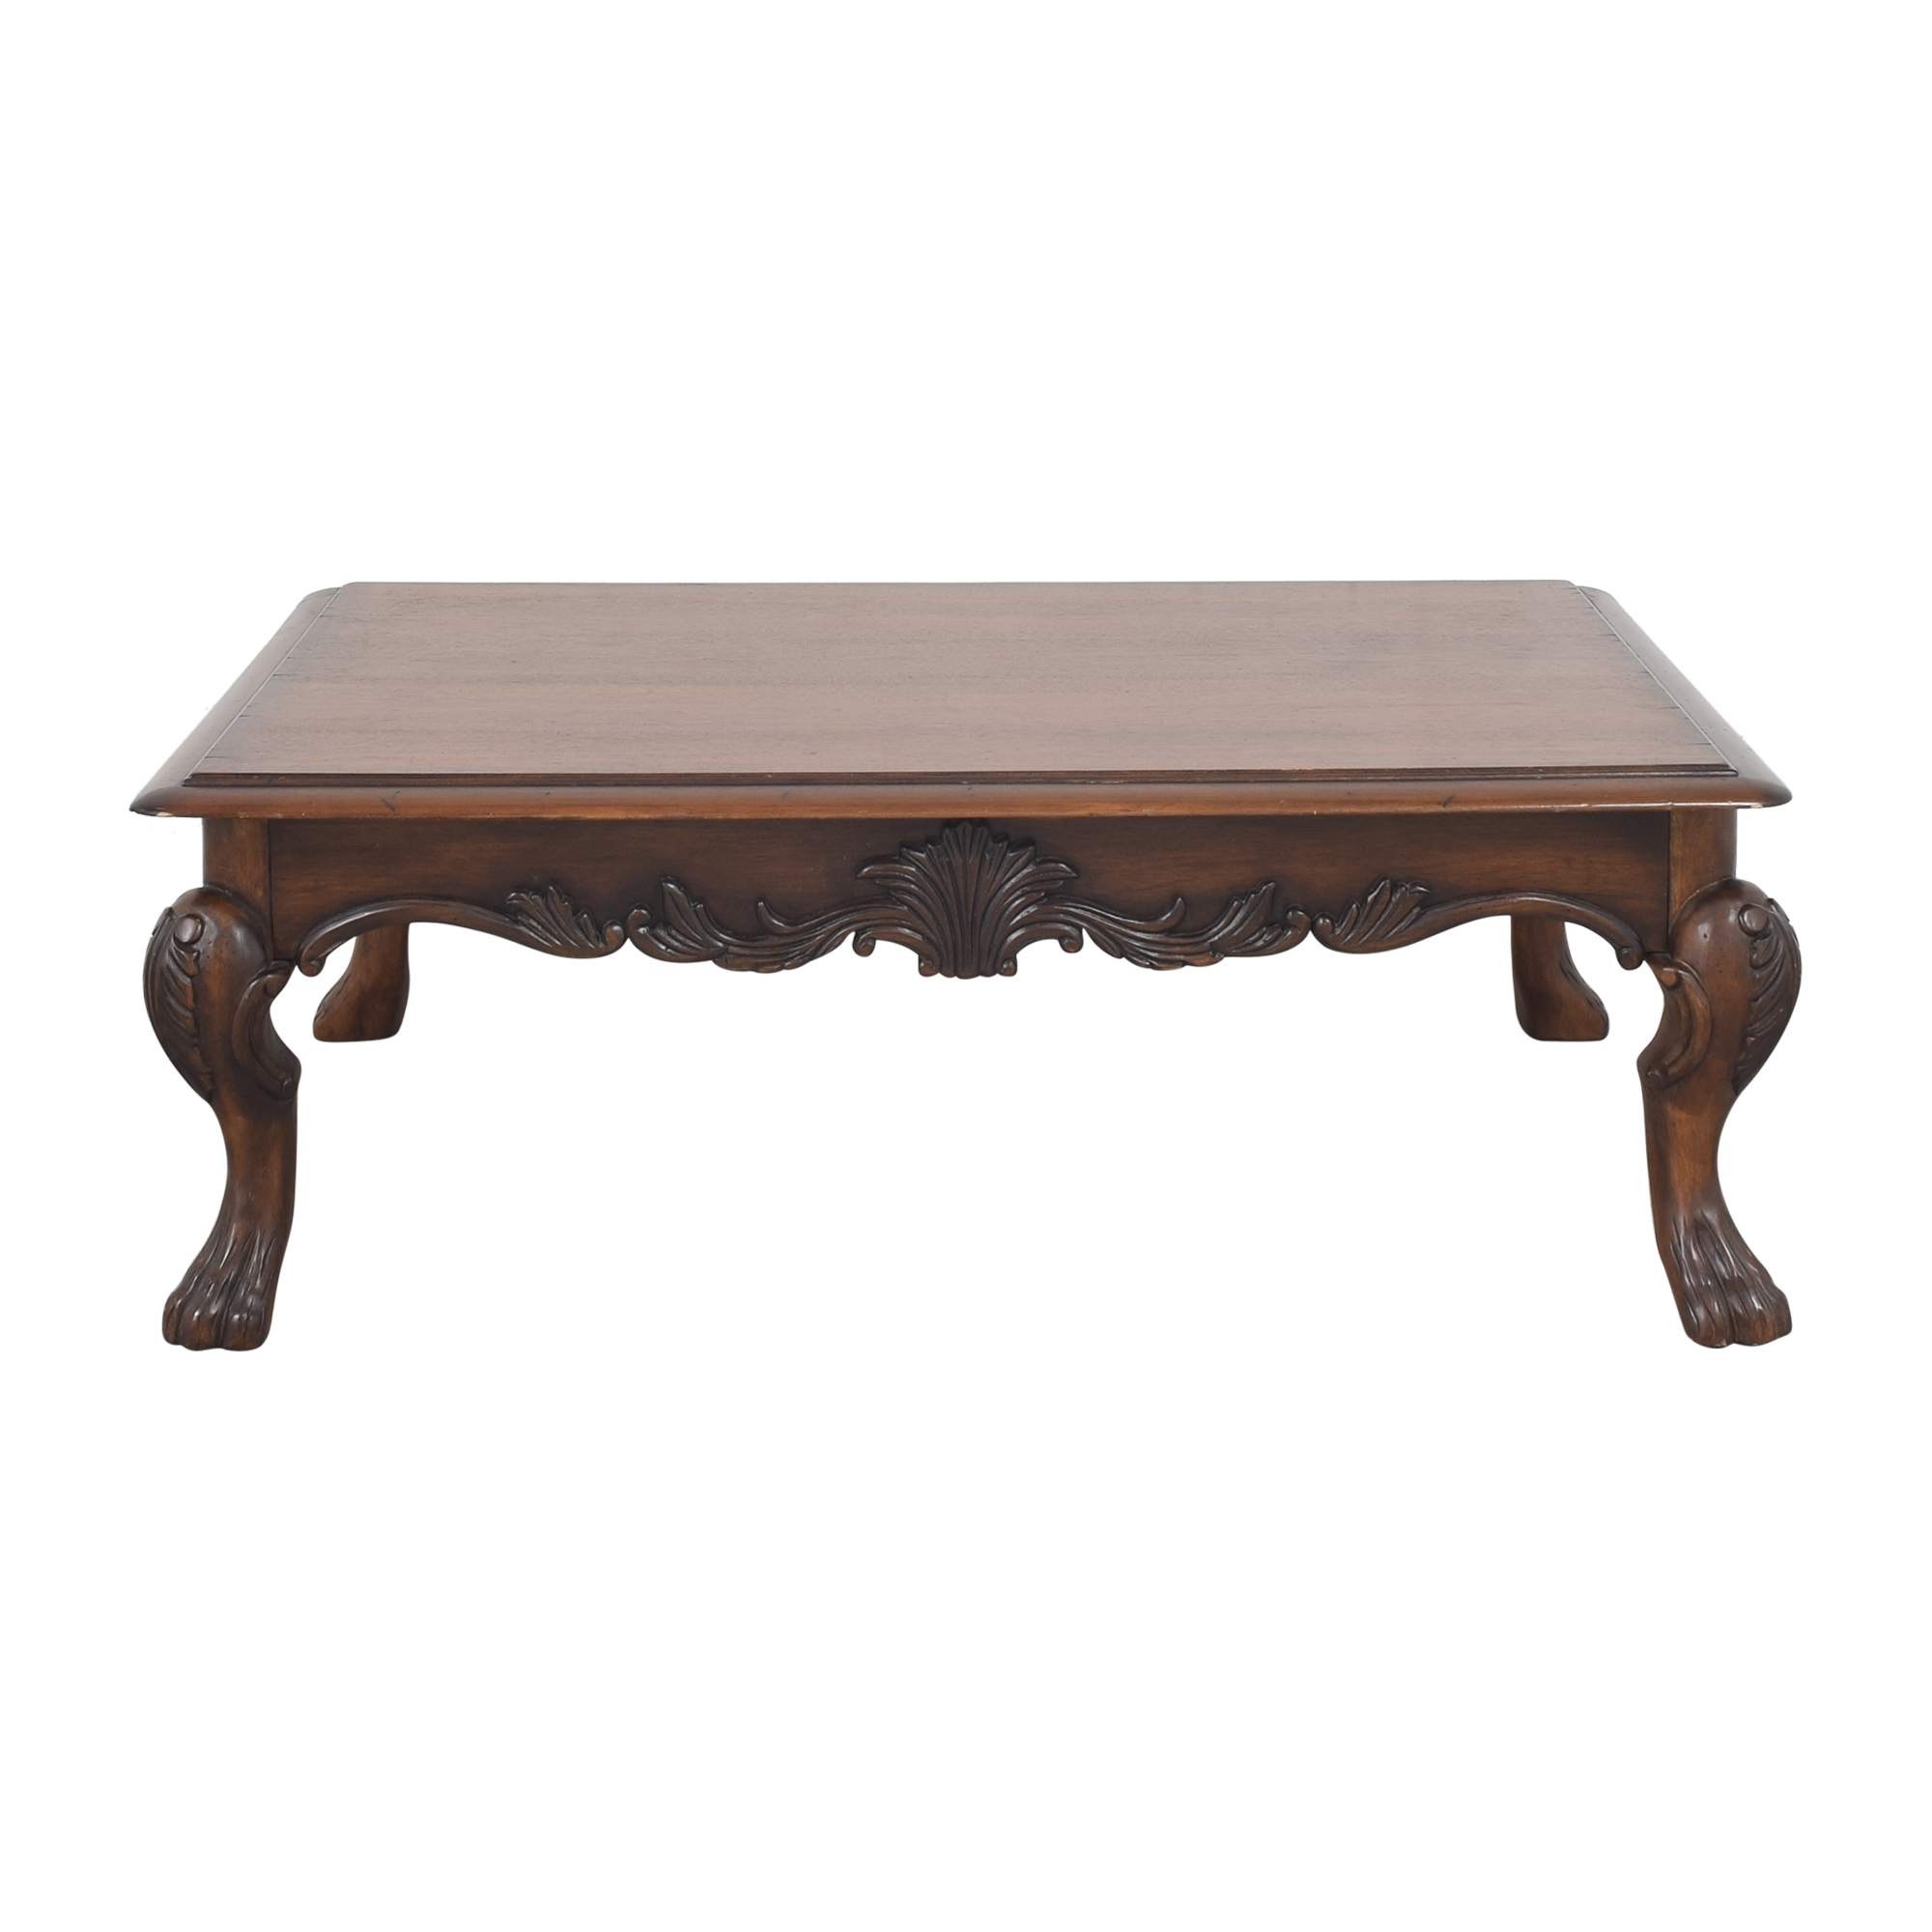 Ethan Allen Ethan Allen Cabriole Coffee Table Tables